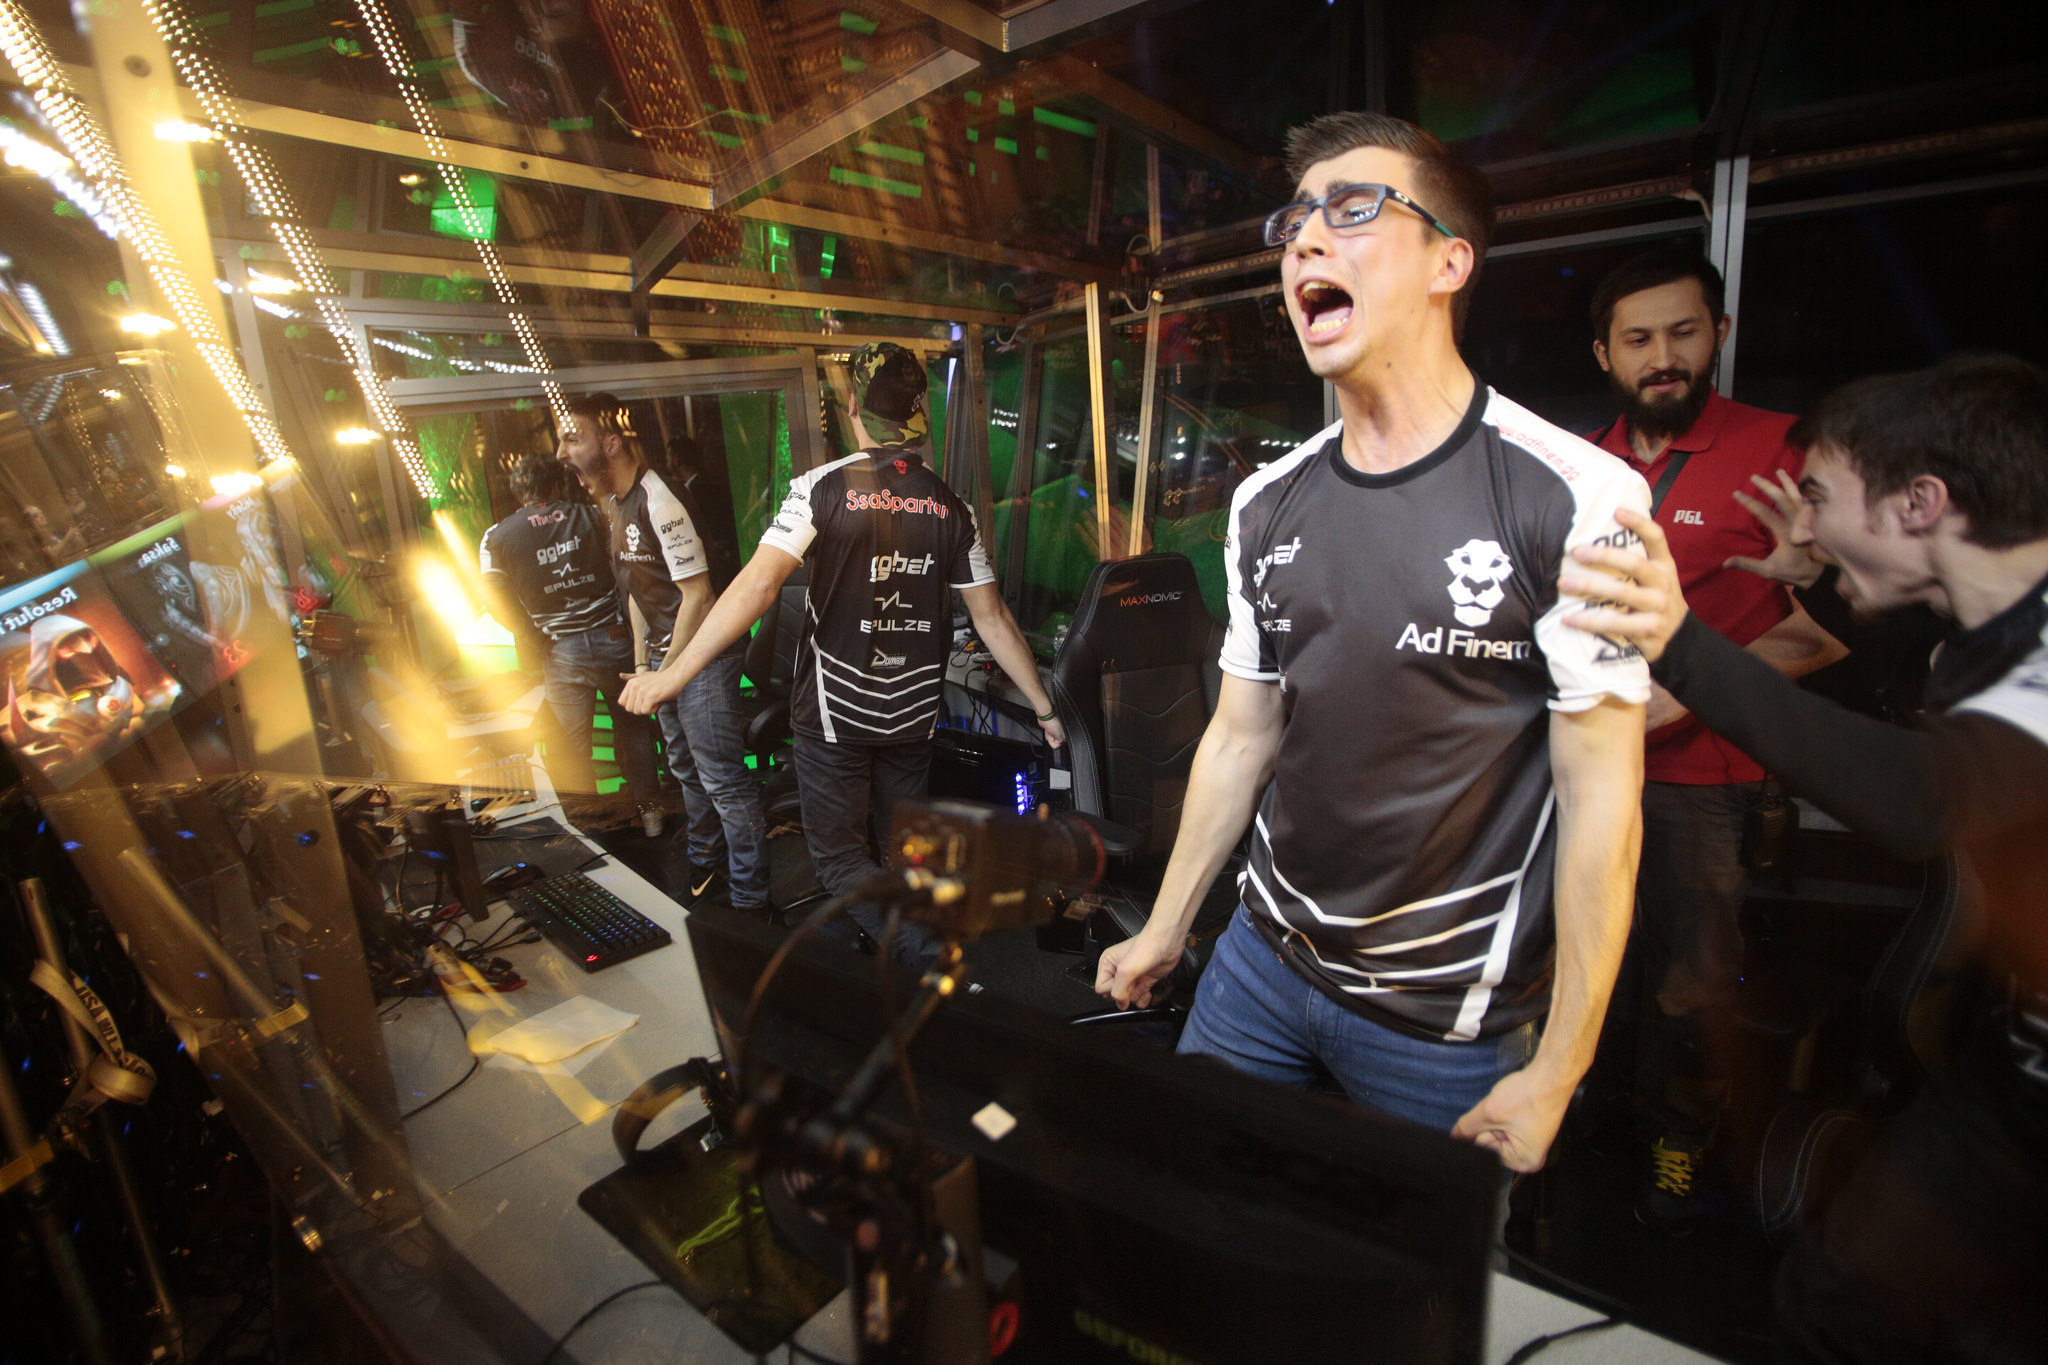 Ad Finem brought the passion at the Boston Major